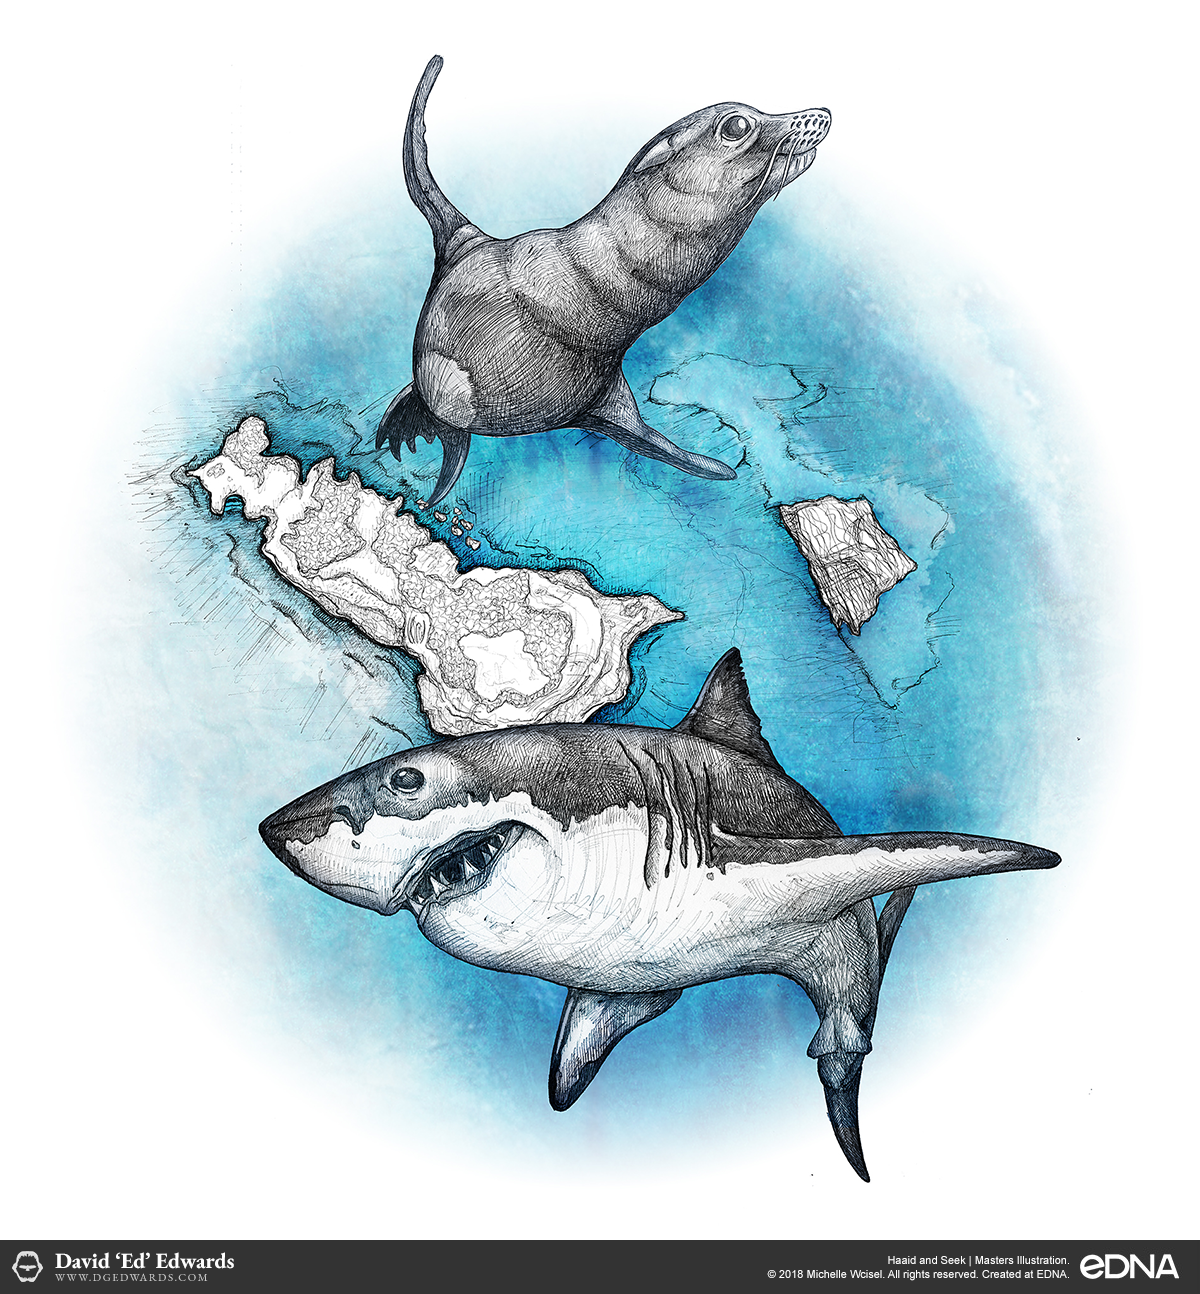 Illustration of a great white shark and cape fur seal